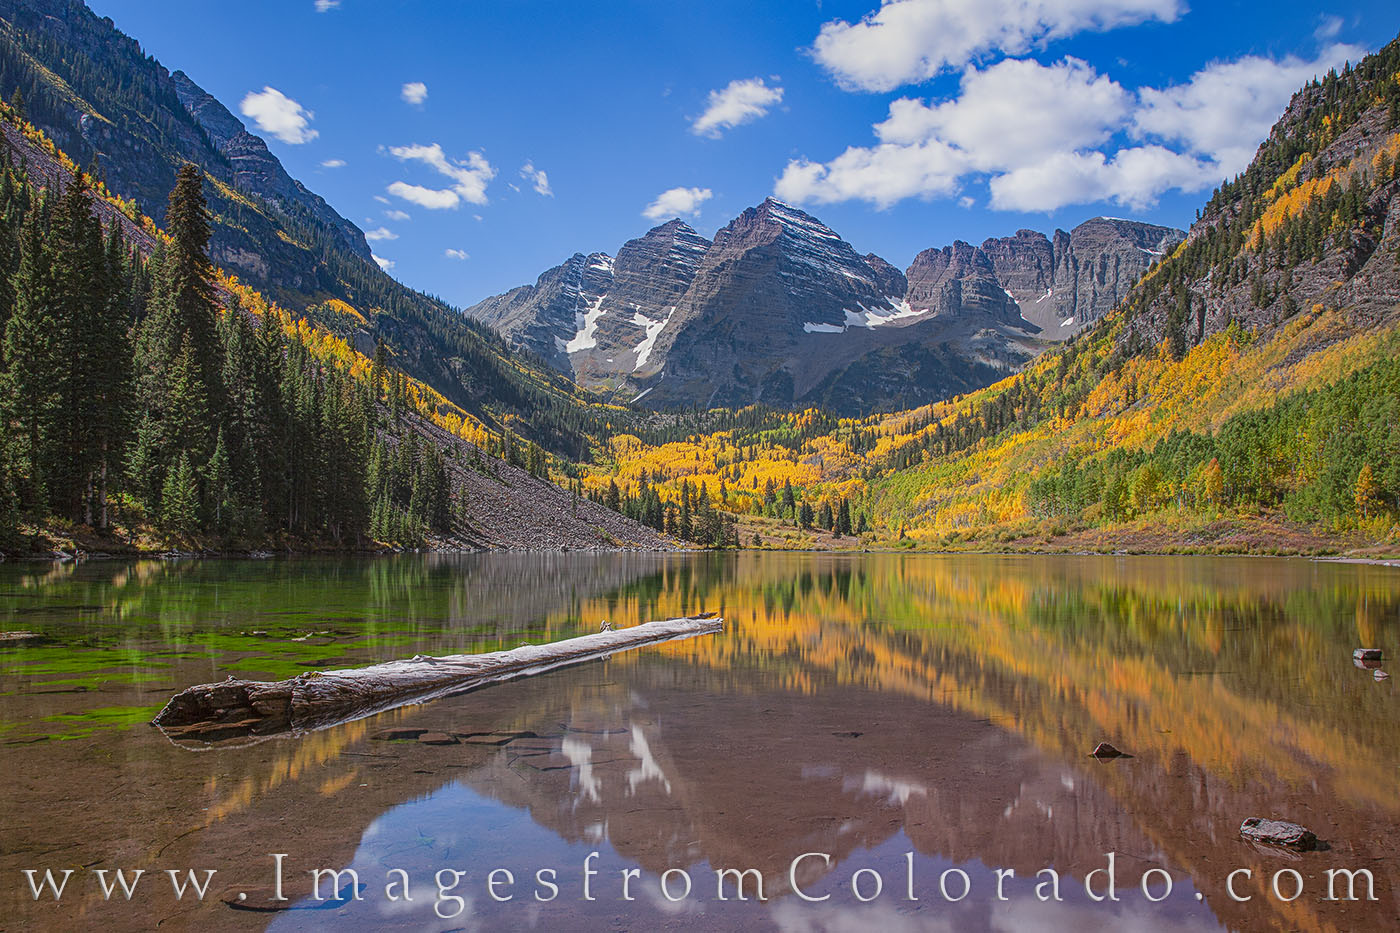 On a pristine Autumn morning in the Elk Mountains, the aspen trees of Maroon Bells and Maroon Lake put on a colorful display...